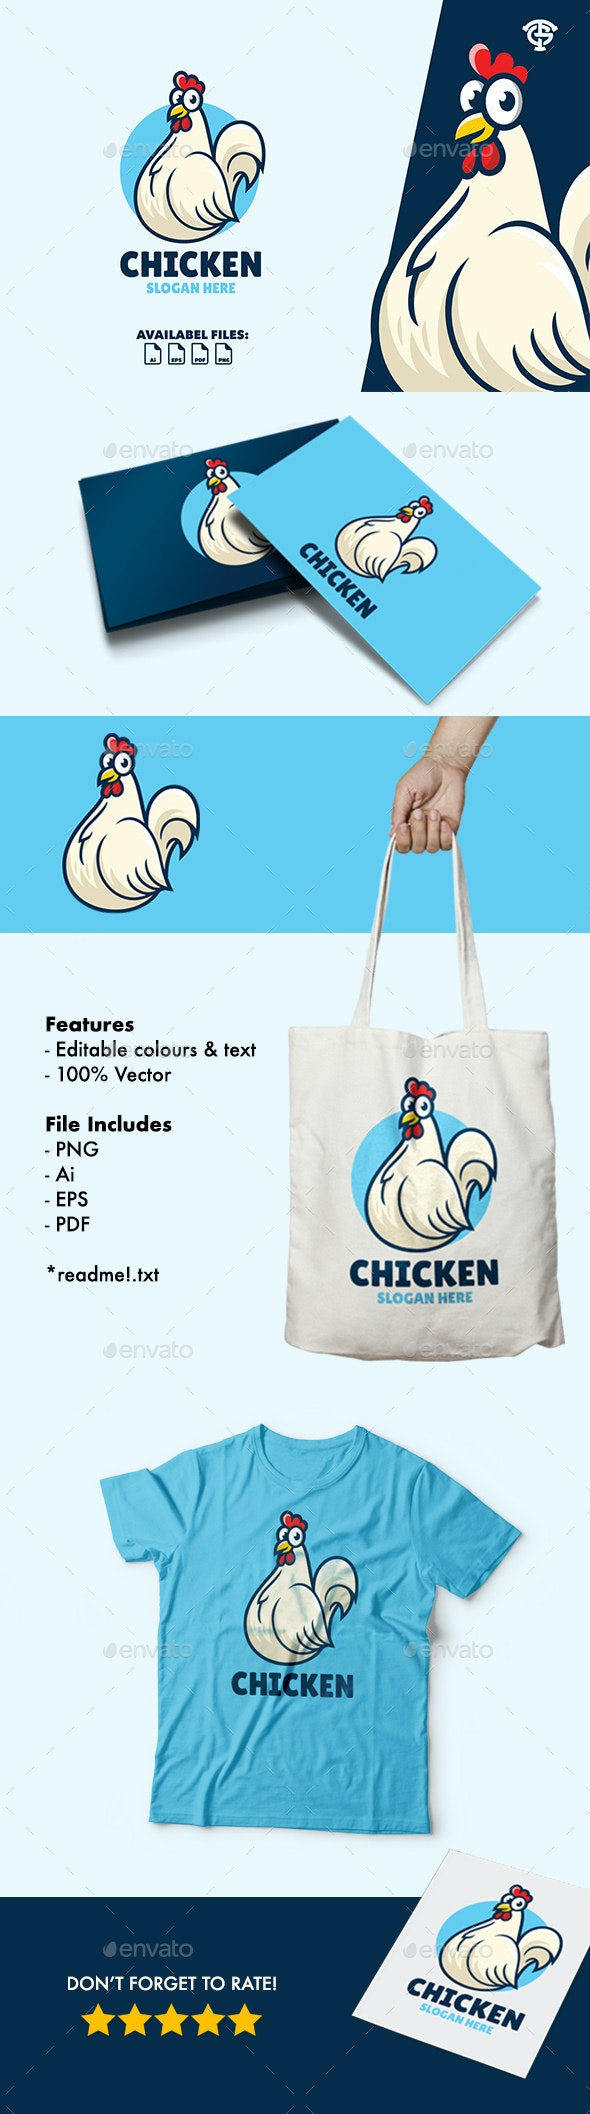 Chicken - Logo Mascot - Animals Logo Templates